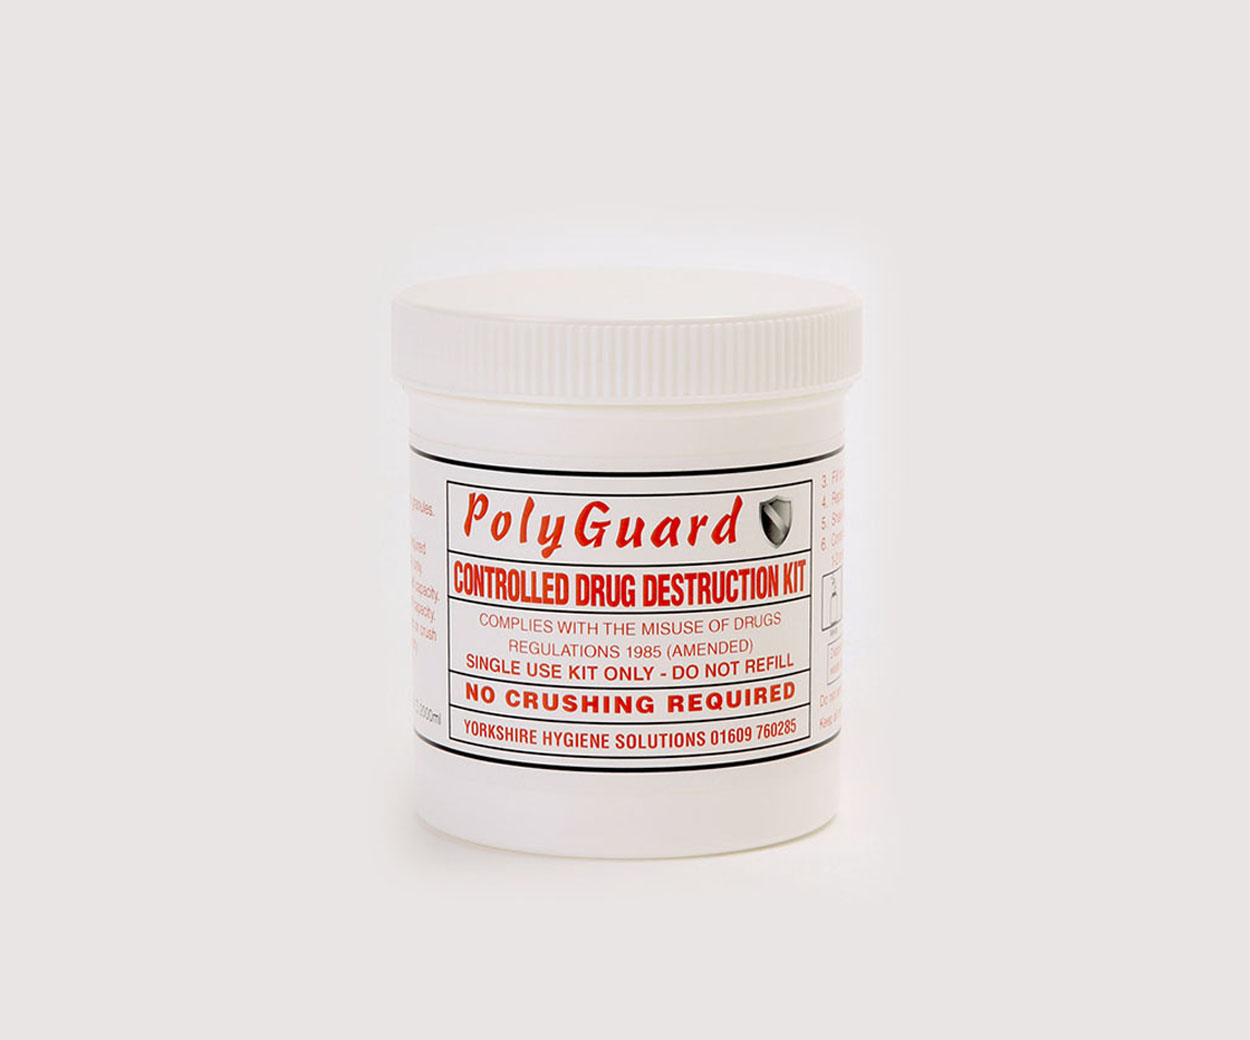 PolyGuard Controlled Drug Destruction Kits